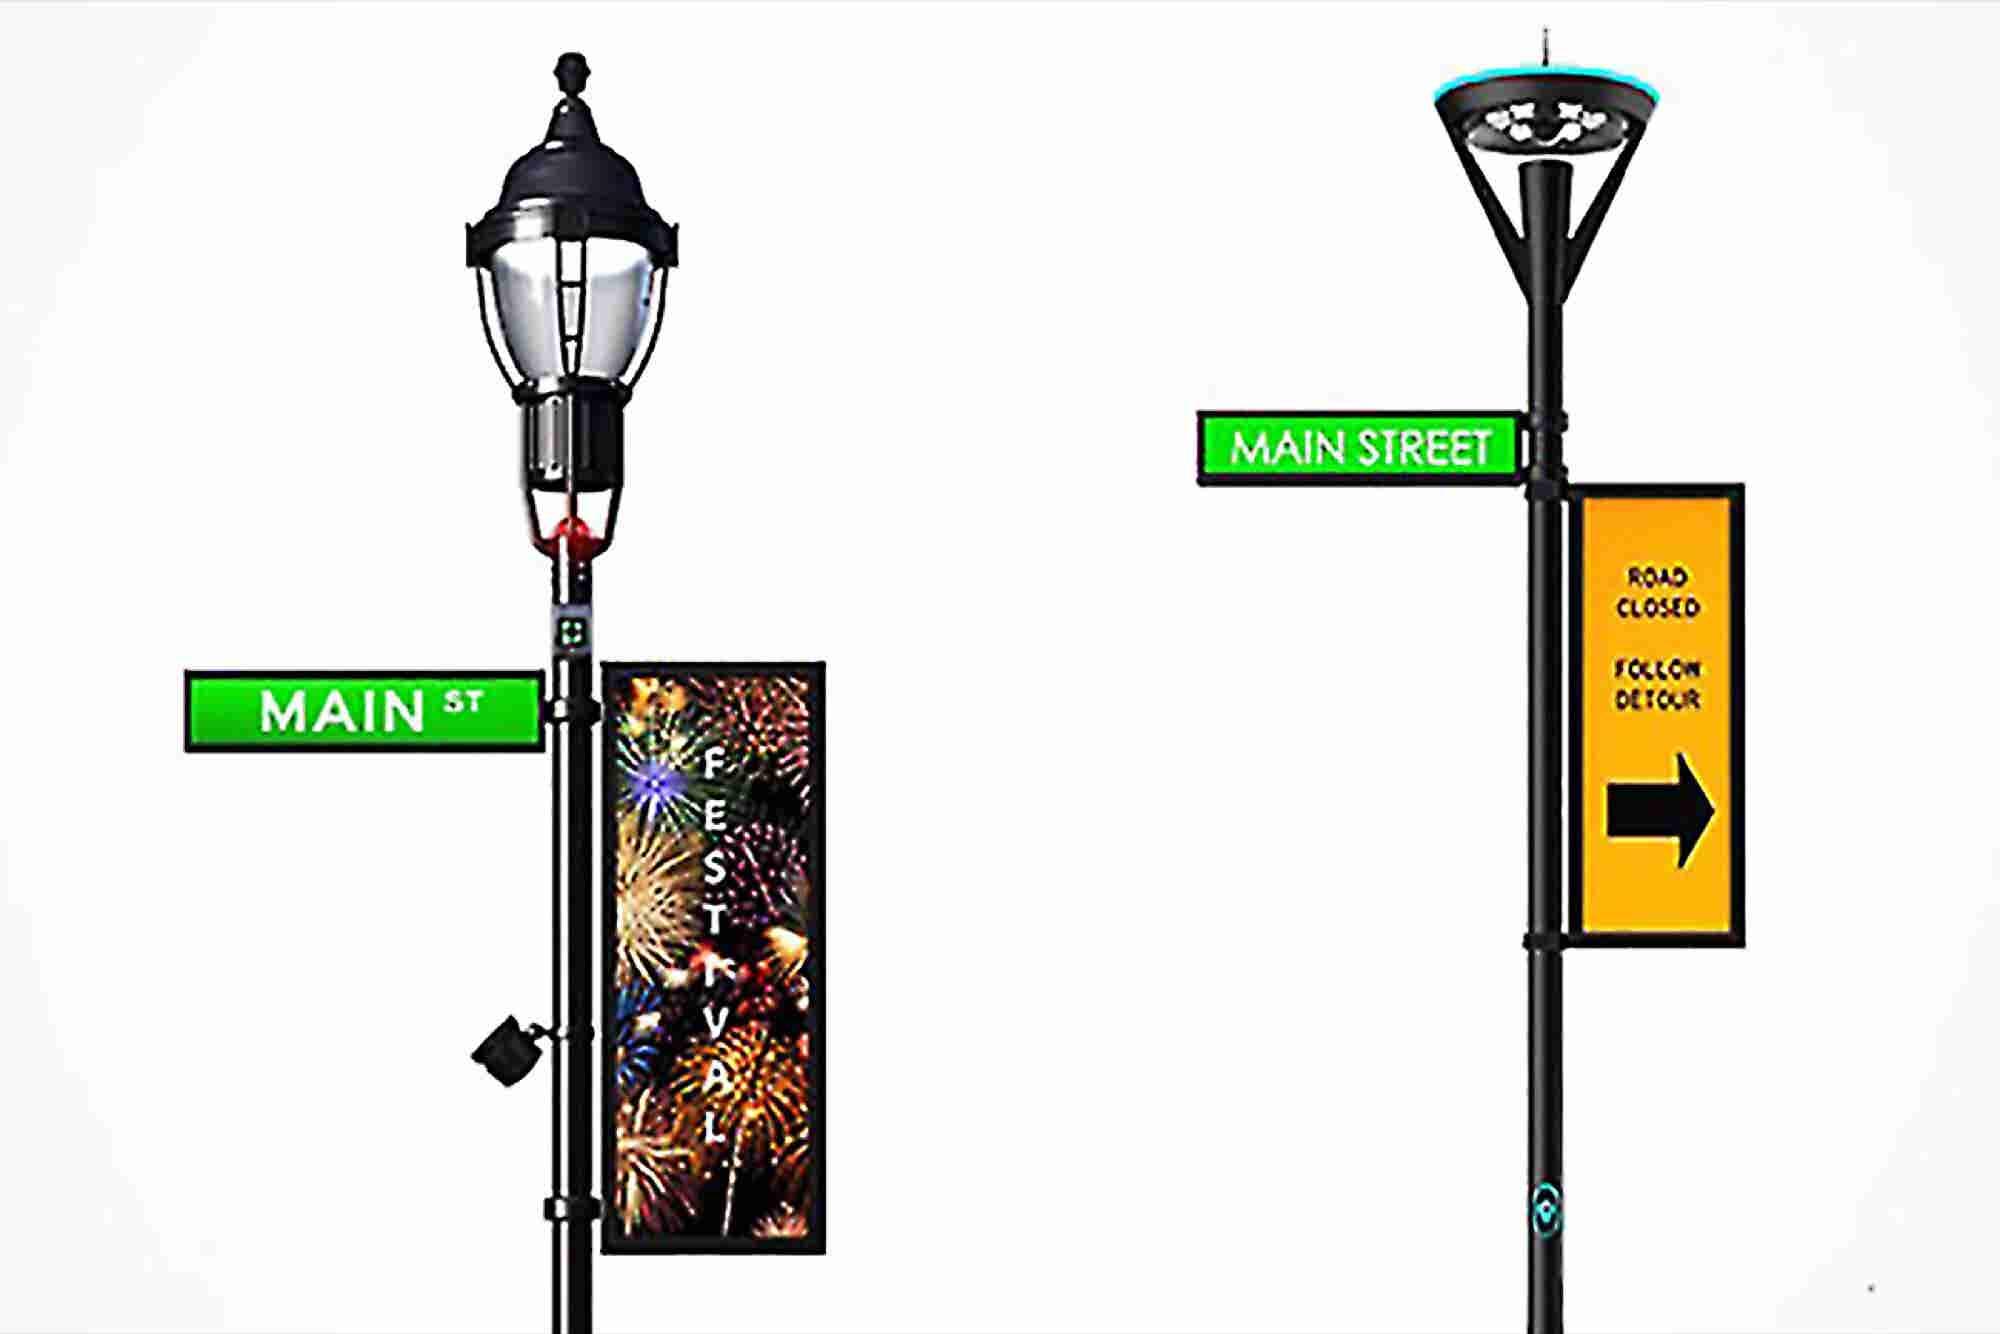 Talking Lamp Posts Are Just the Beginning in Verizon's Vision of a Smart City